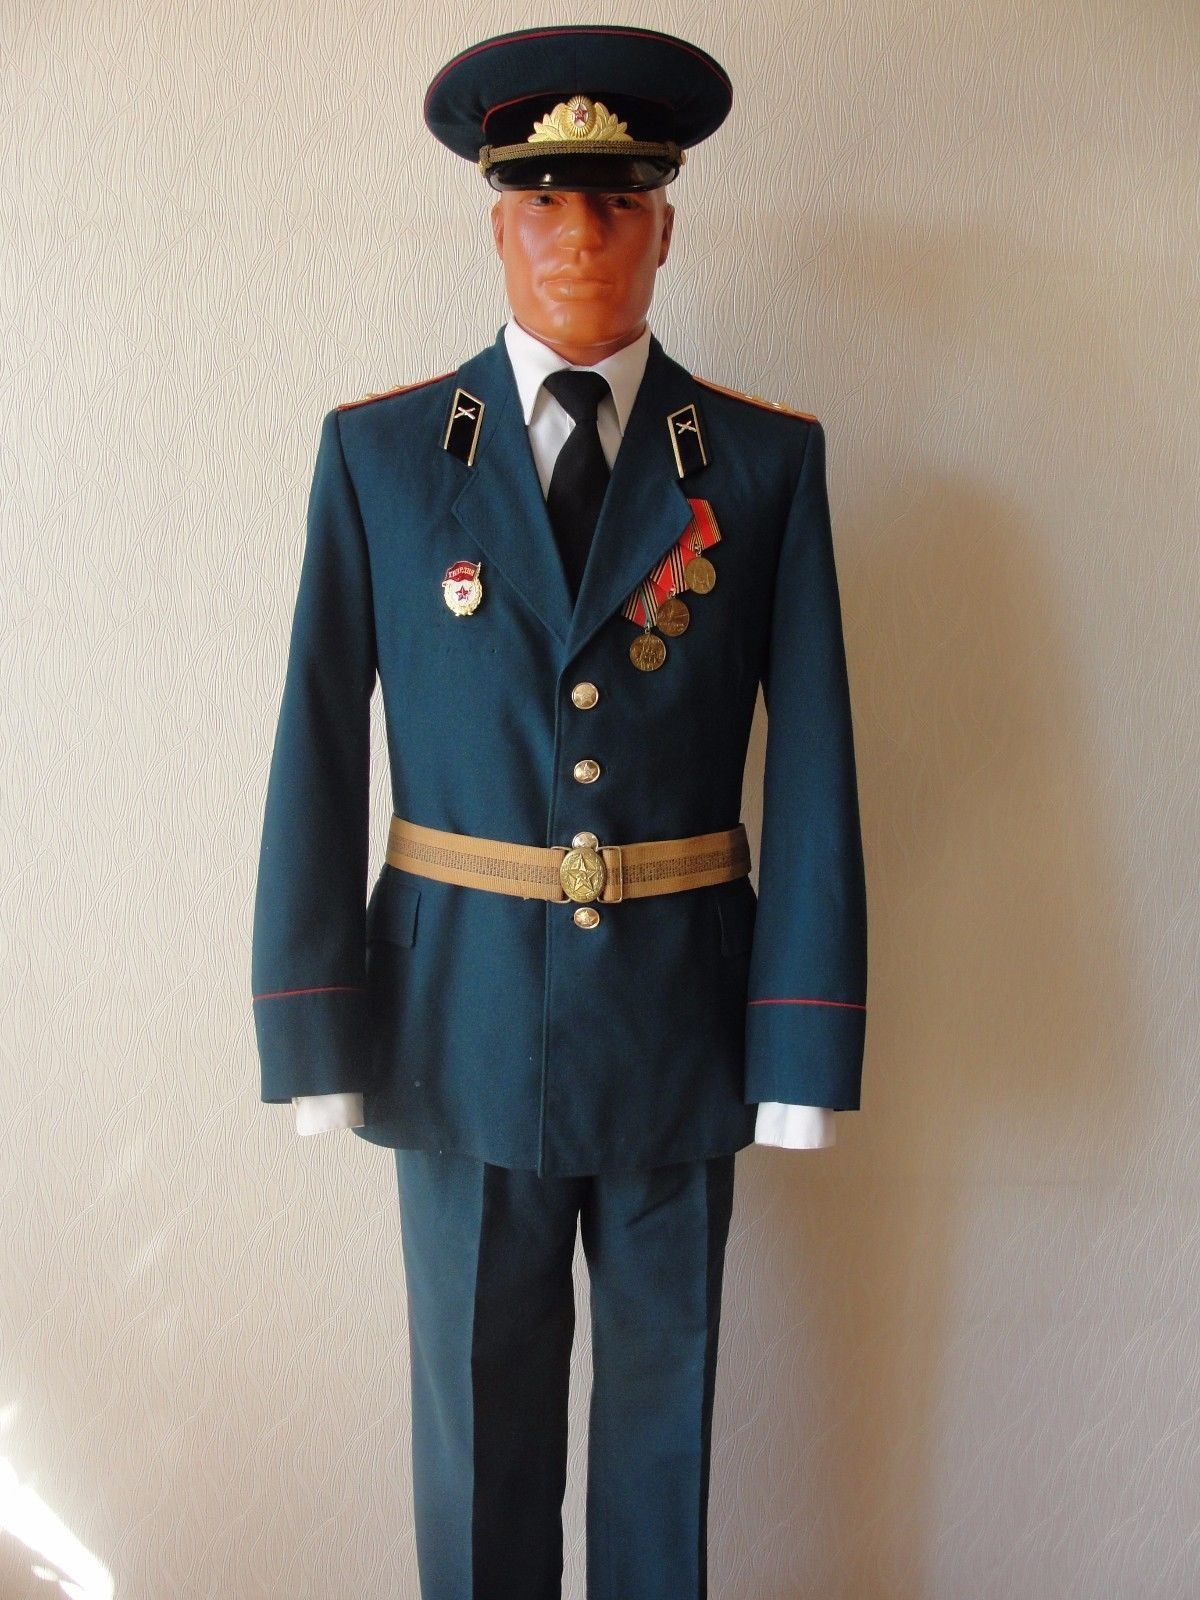 d007c004abe USSR. dress uniform Soviet army officer